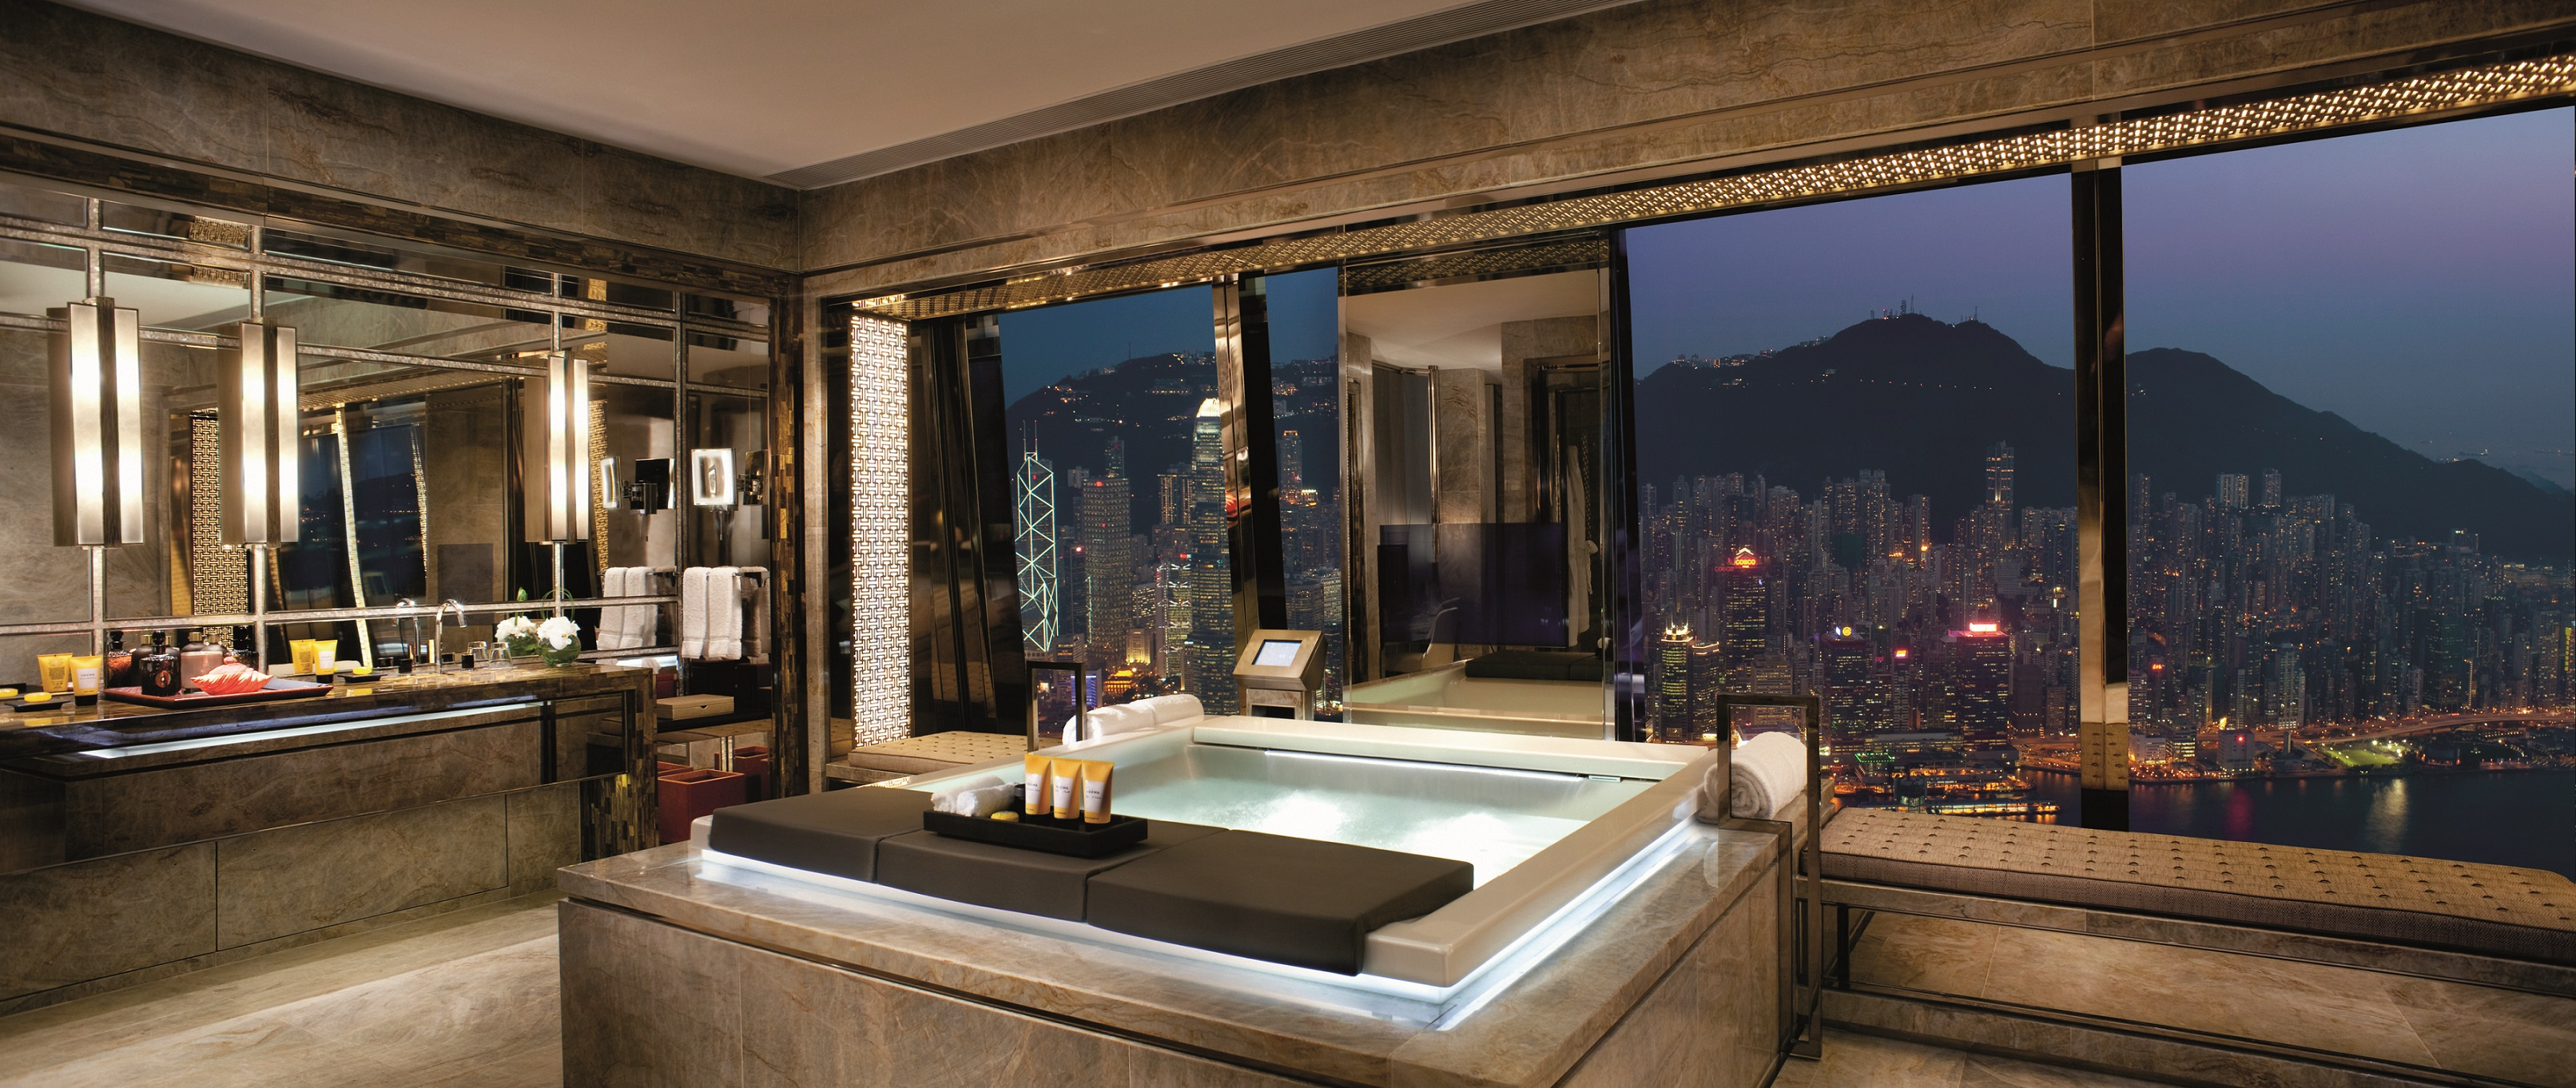 the ritz-carlton suite - victoria harbour, luxury bathrooms JIRUJIO